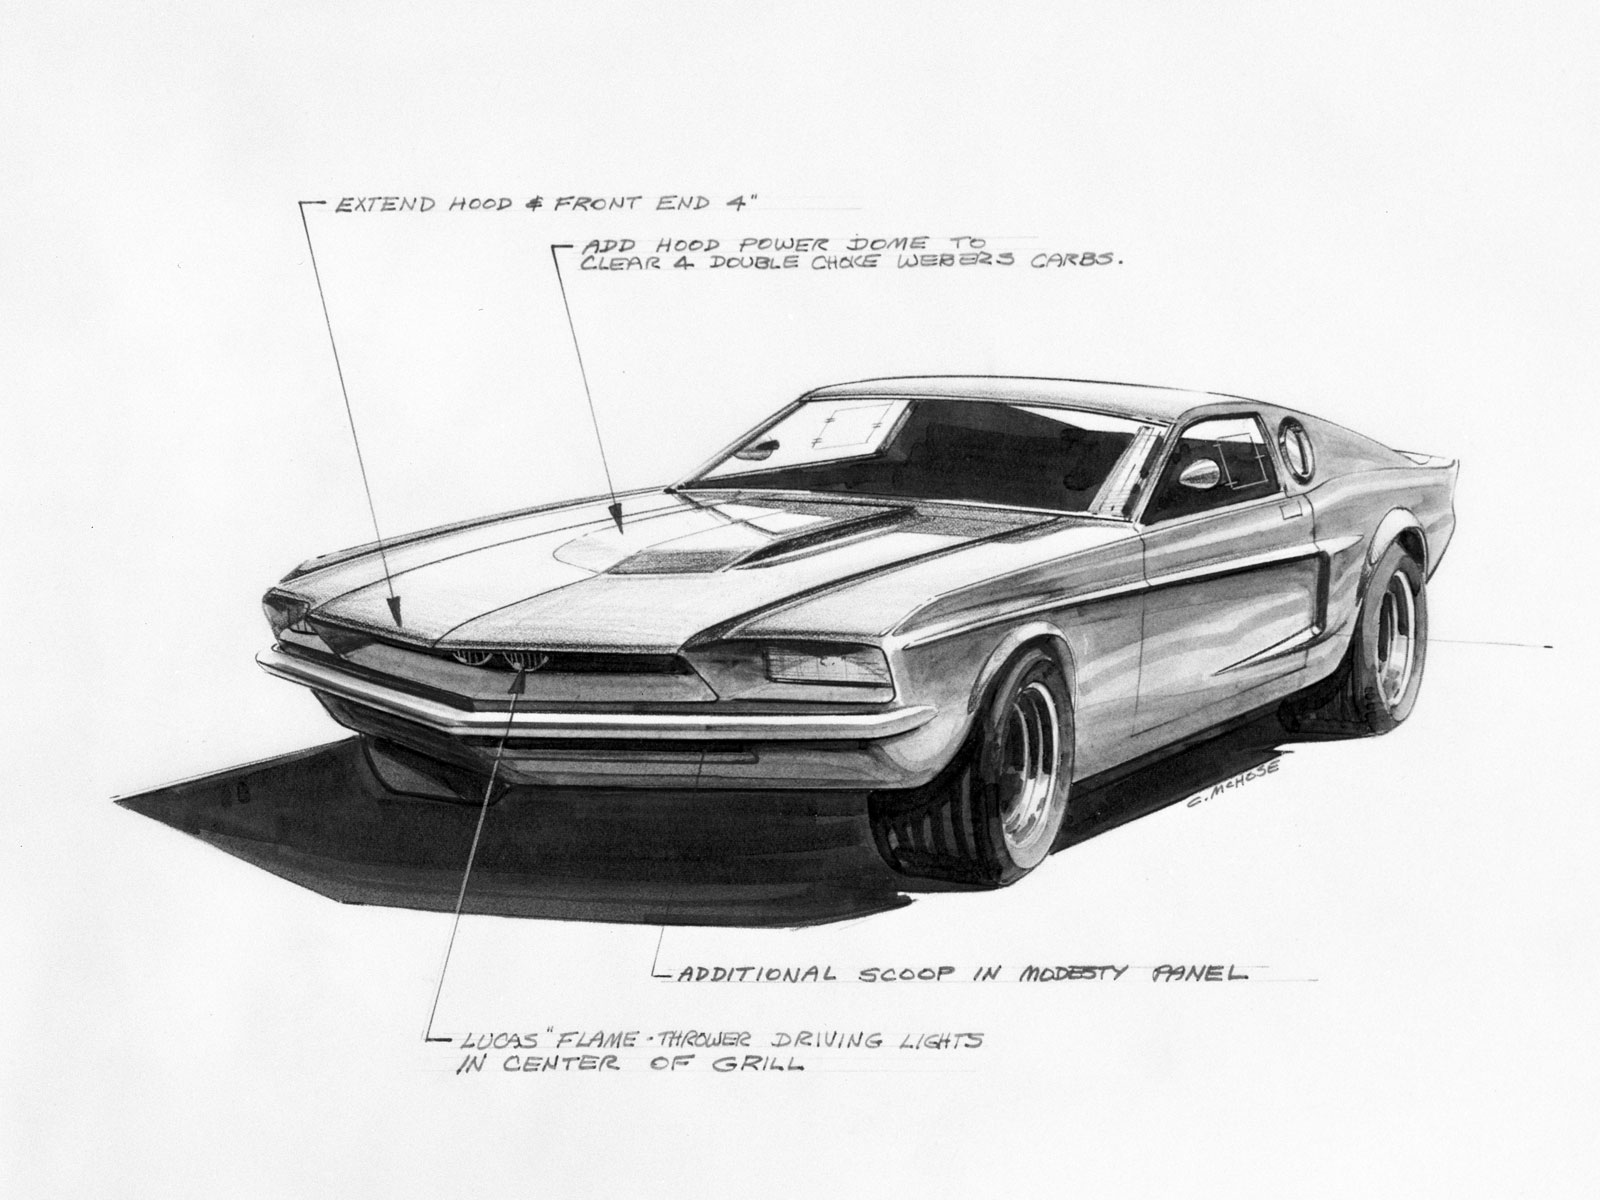 1966 Ford Mustang Mach 1 Concept Design Sketch